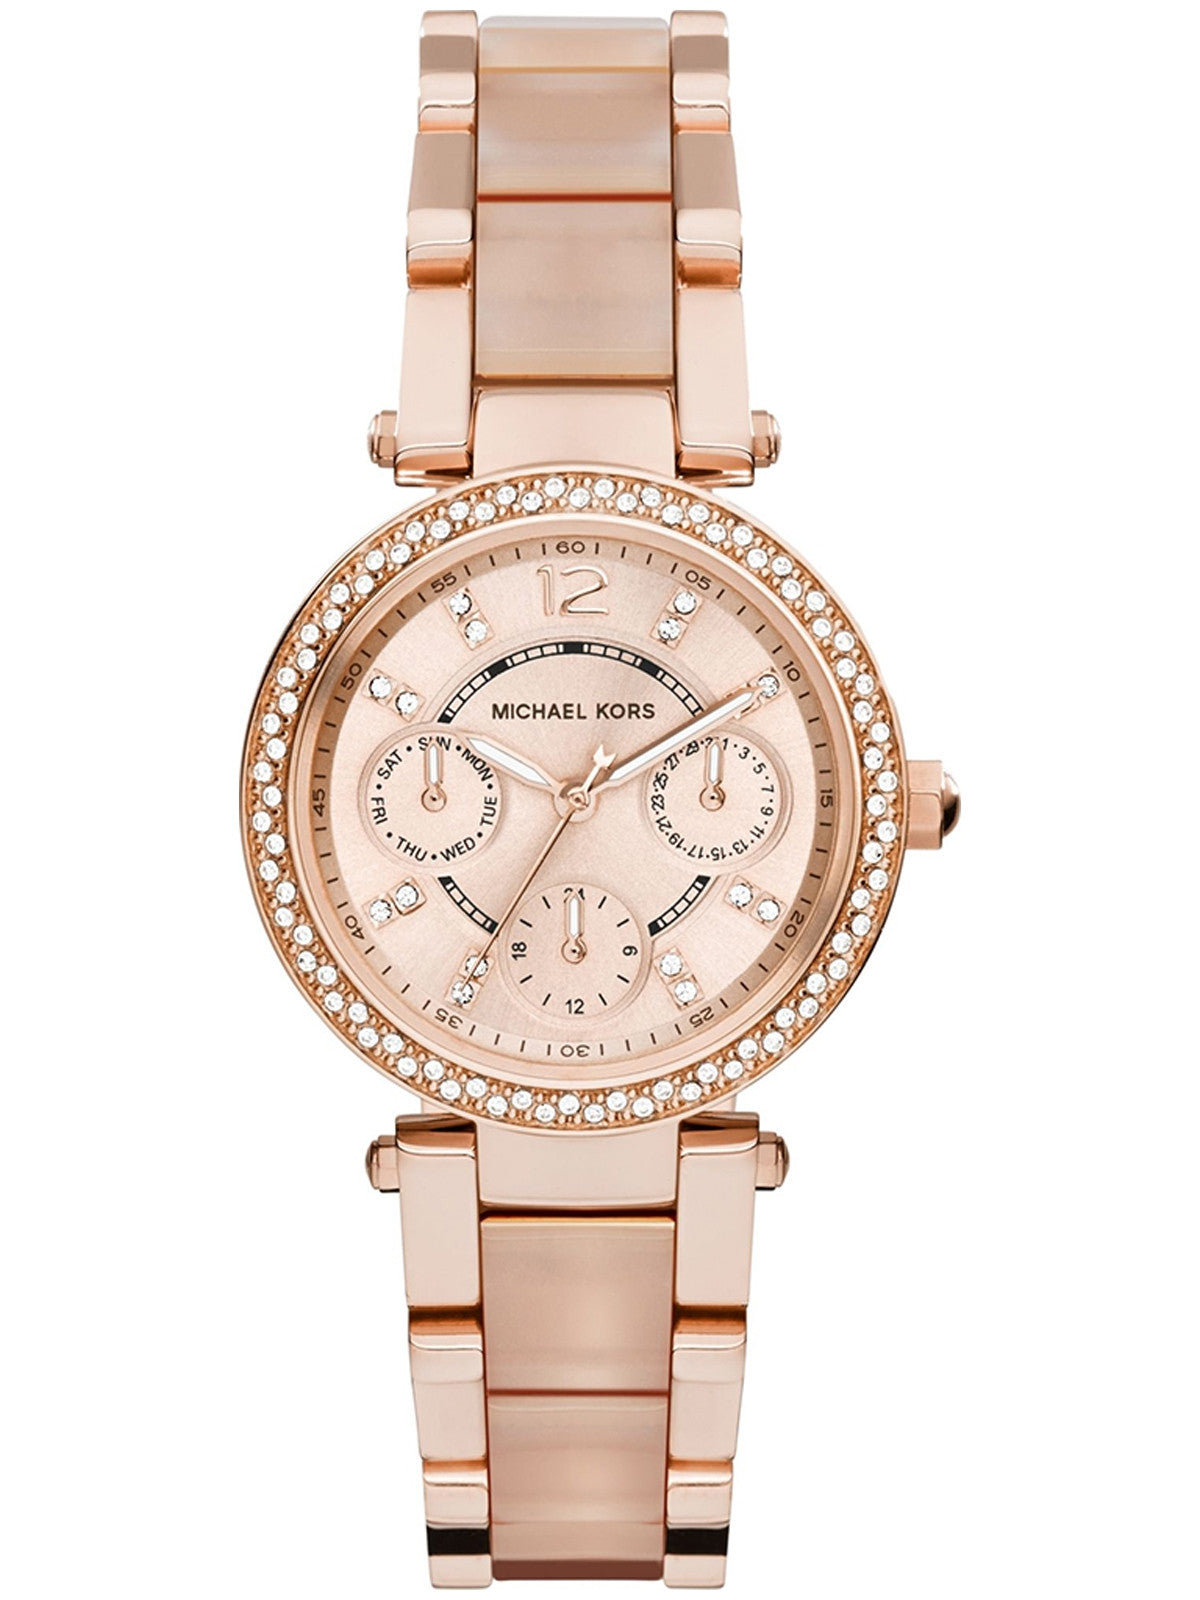 Michael Kors Watch MK6110